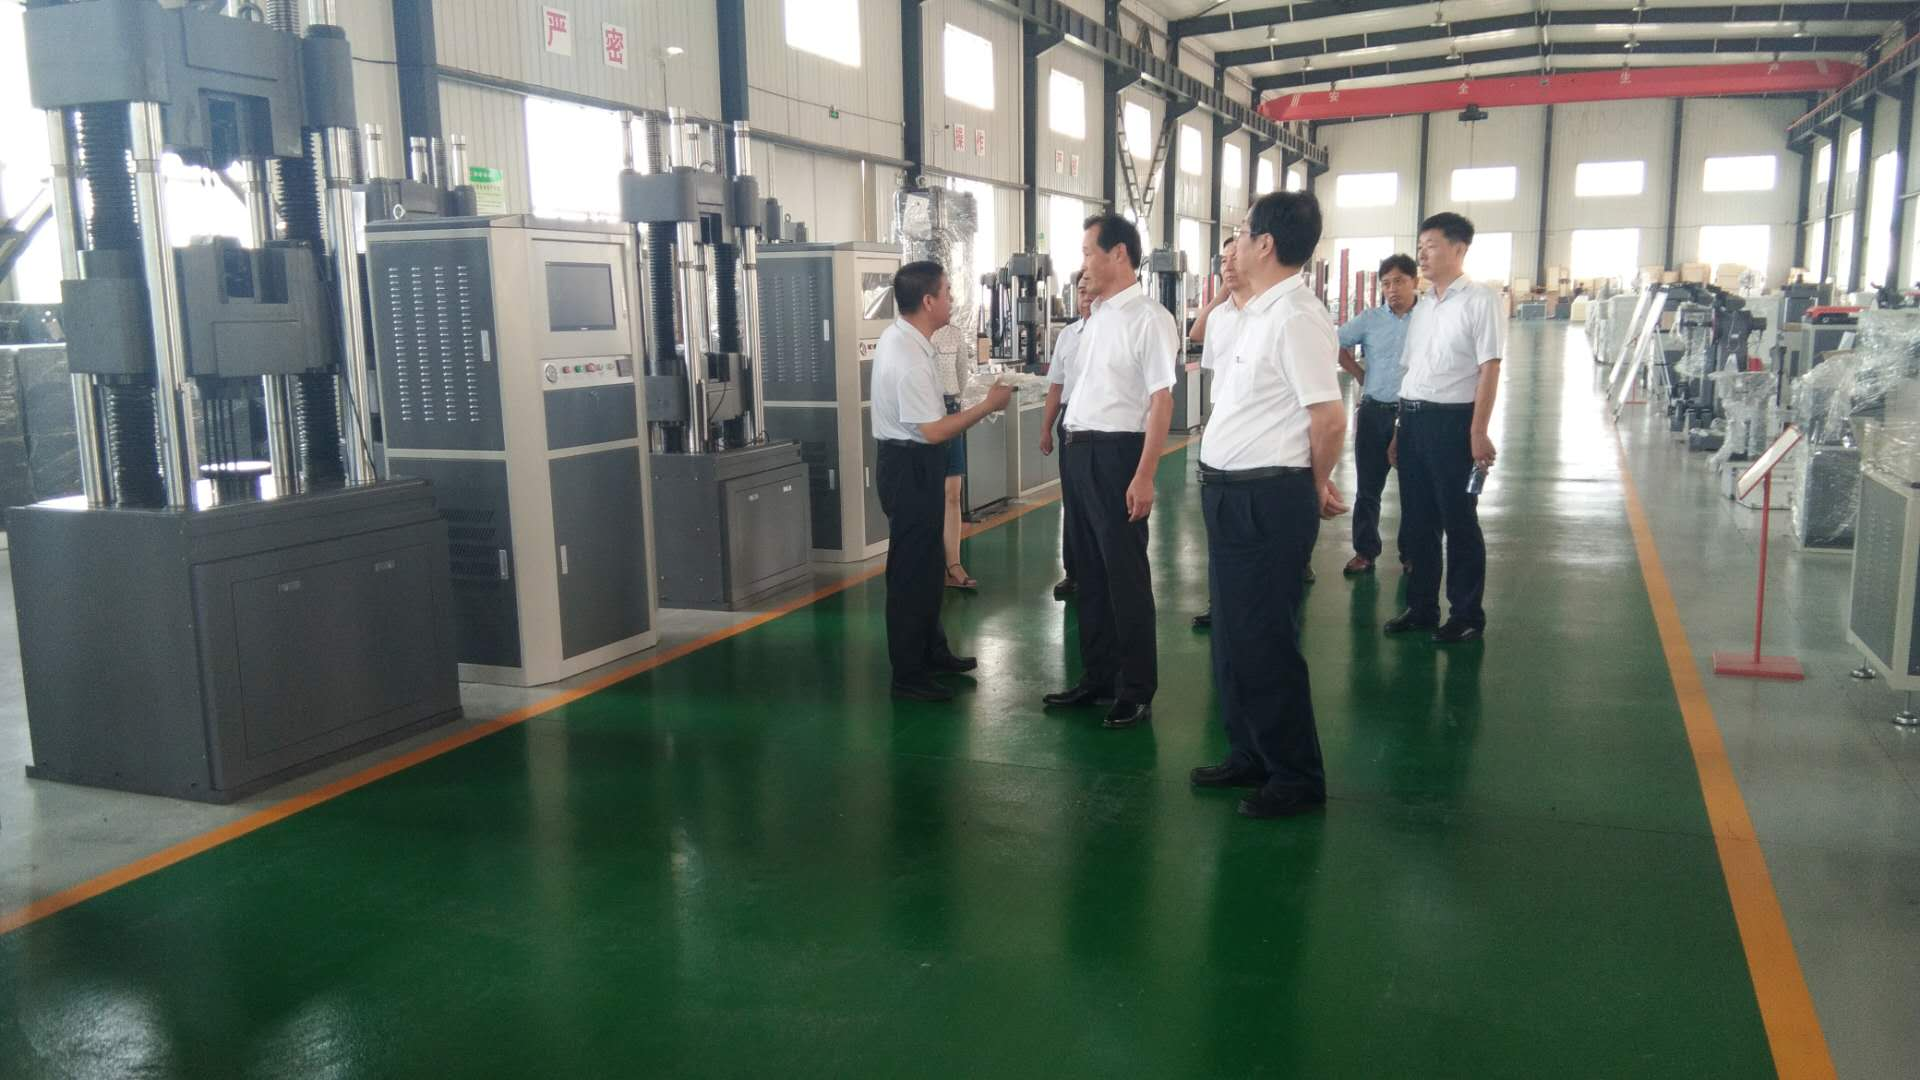 Director Hu of the Shandong Provincial Small and Medium Enterprise Bureau visited Liangong company